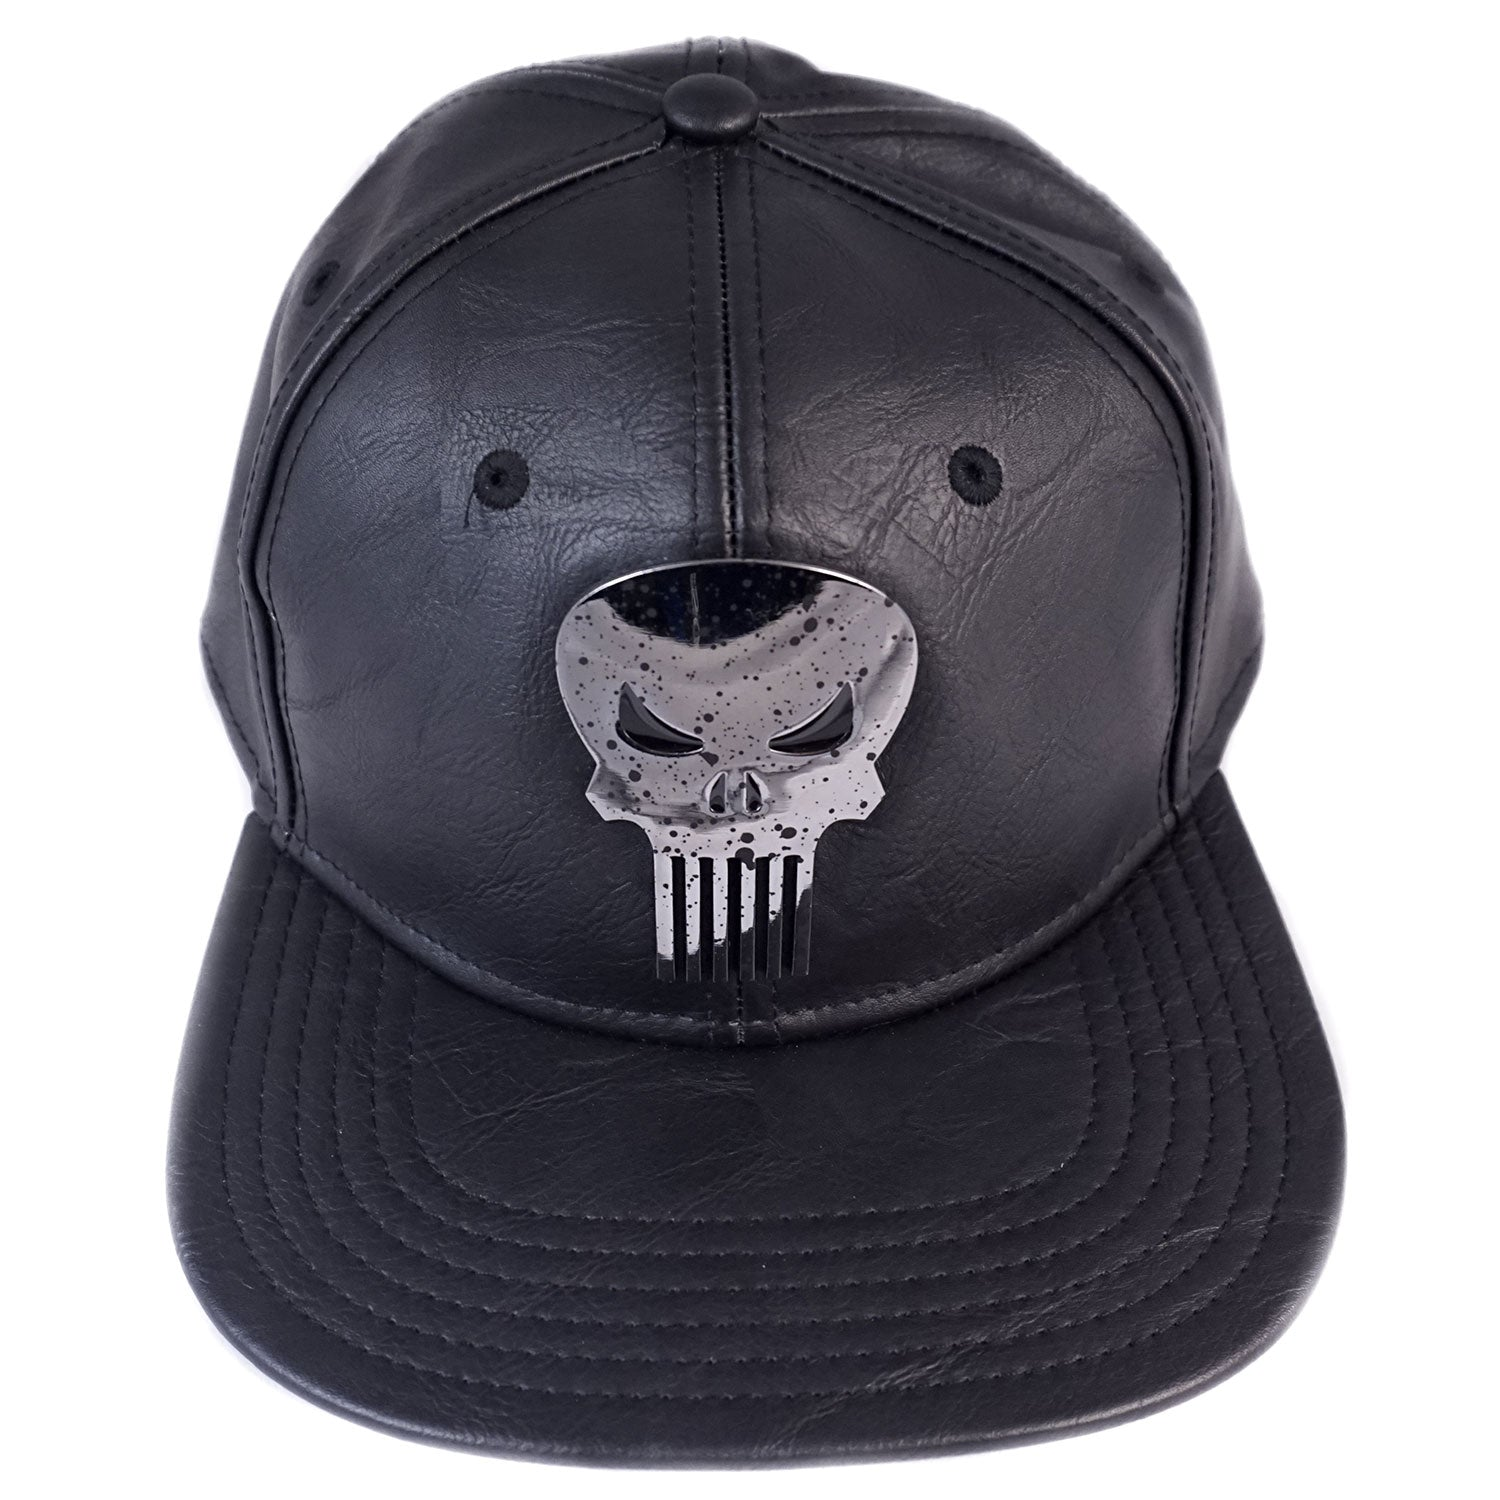 MARVEL - Punisher Suit Up Faux Leather Black Snapback